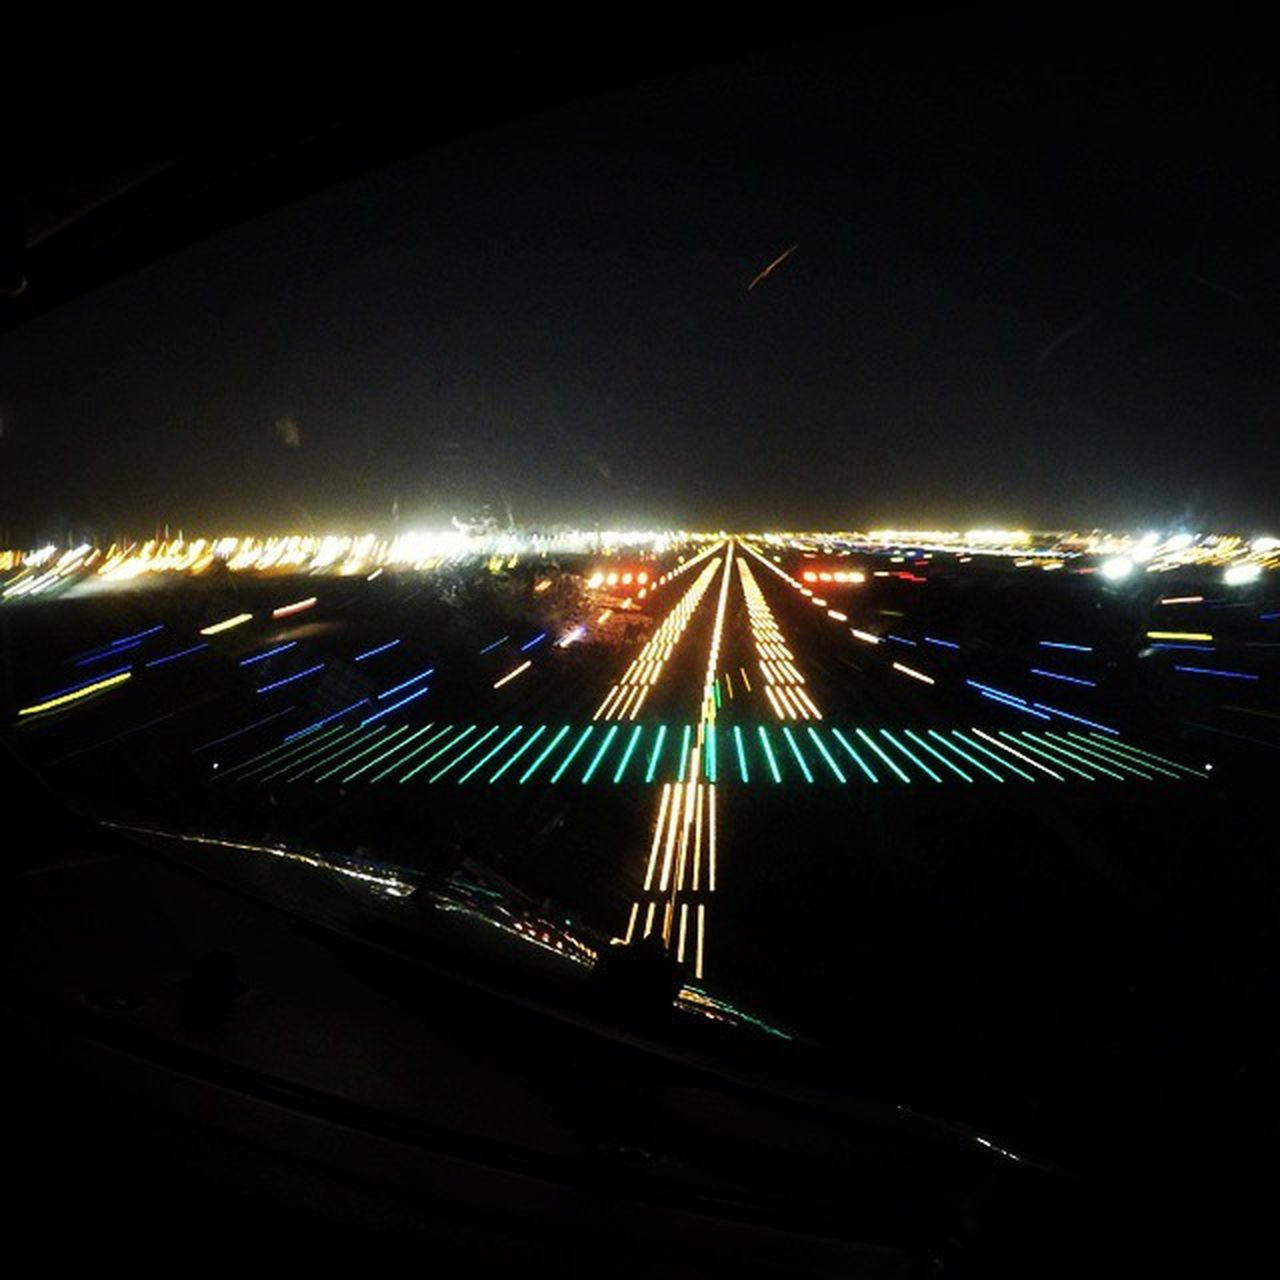 Landing on Runway 30L in Dubai Approachlights Runwaylights Airport Airplane Airplane_lovers Cockpitview Flightdeckview Piloteyes737 Crewlife Piloteyes Cockpit DXB Airlinepilot Avgeek Aviationfreaks Aviationclub Aviationphotography Instapilot Instaaviation Photooftheday Taxytrack